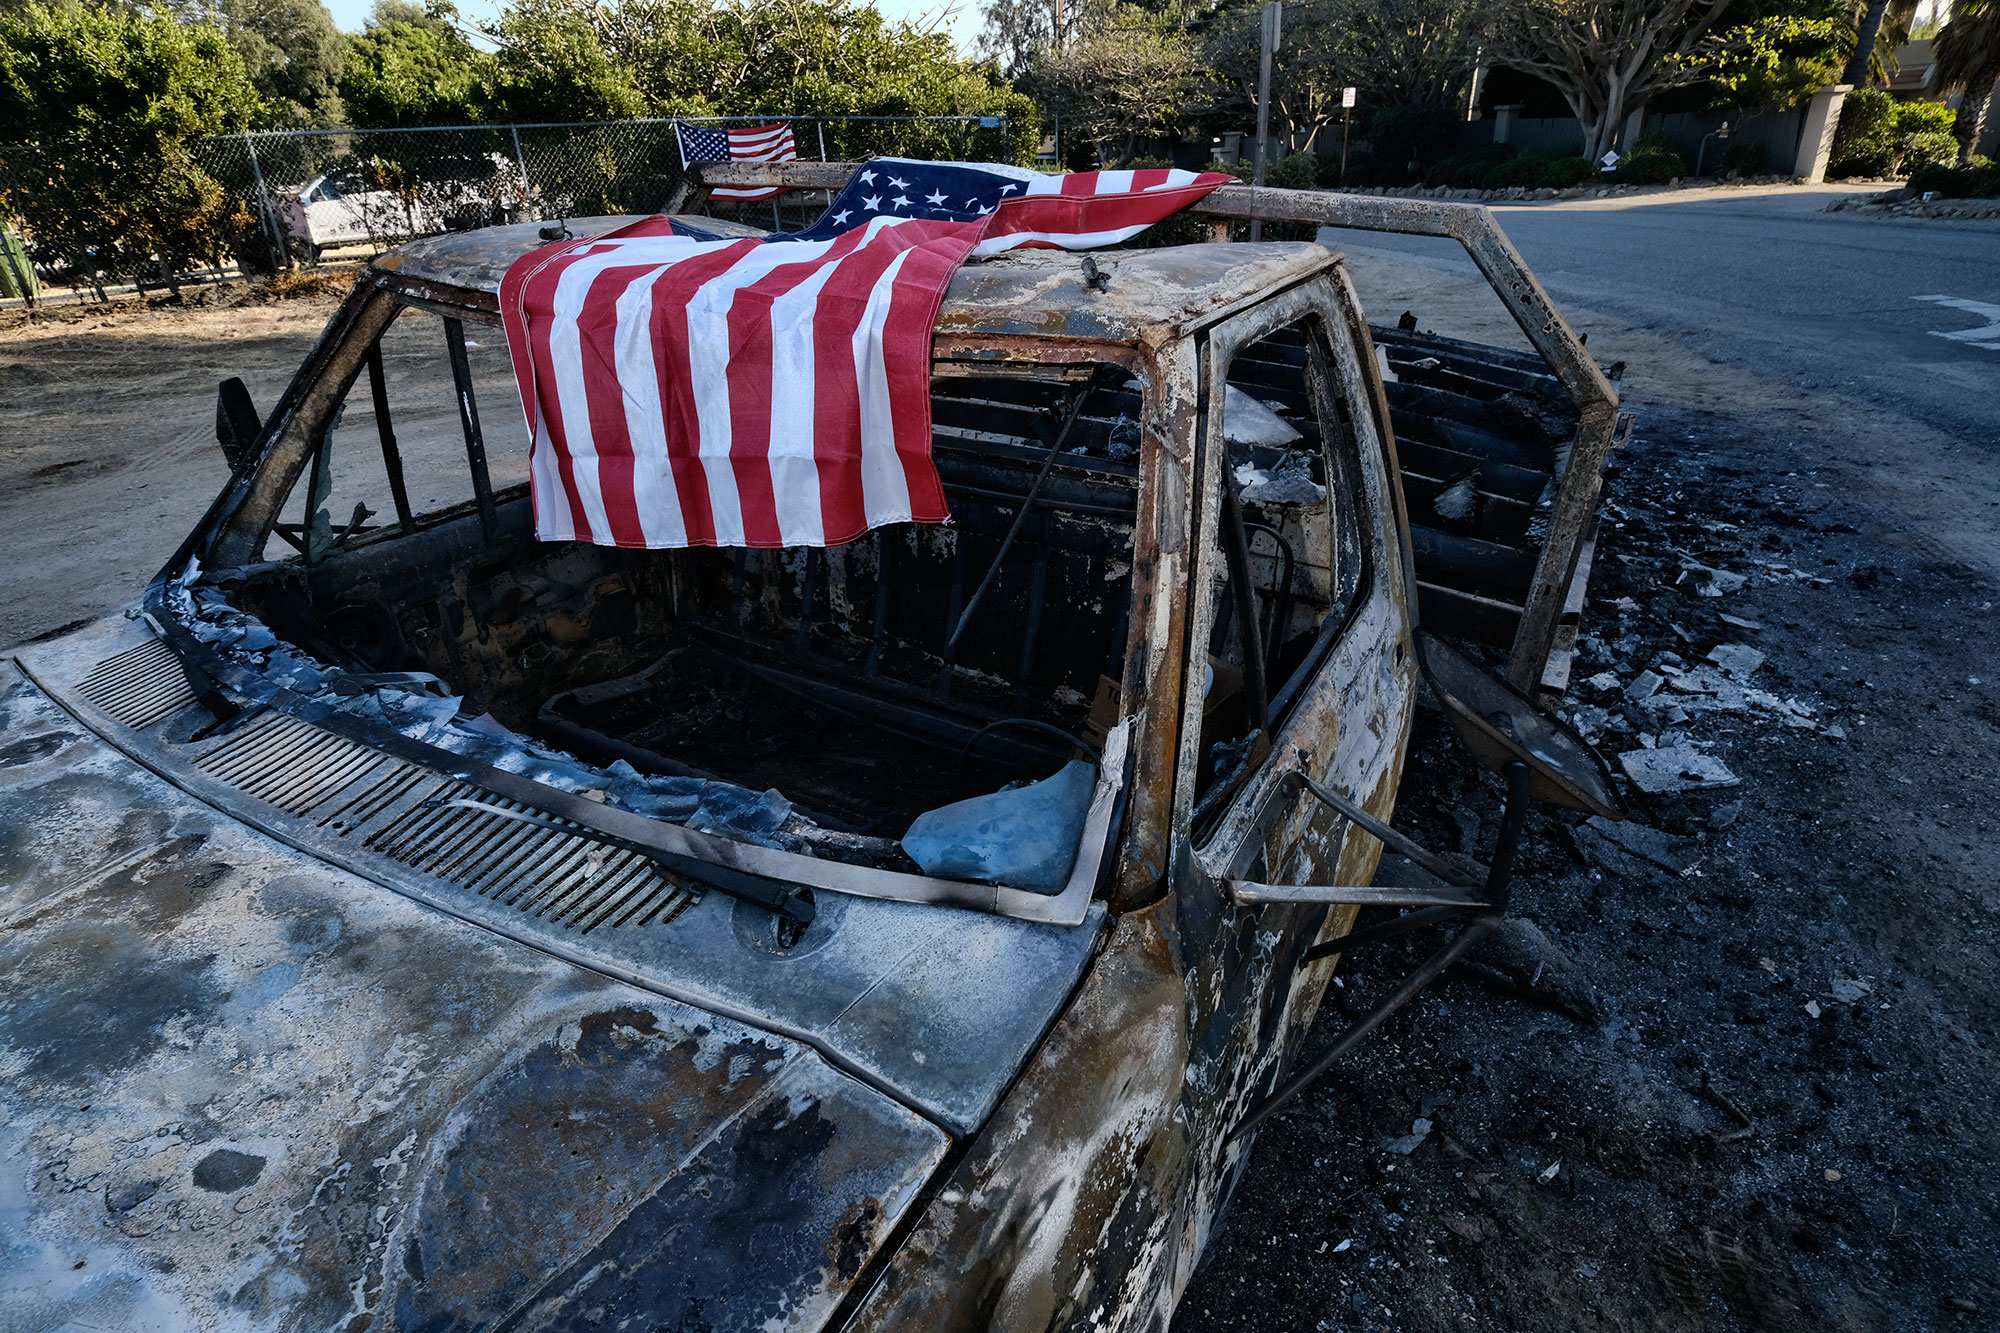 <div class='meta'><div class='origin-logo' data-origin='none'></div><span class='caption-text' data-credit='Richard Vogel/AP Photo'>An American flag is draped over the charred remains of an old pickup truck entering Point Dume along the pacific coast highway in Malibu, Calif., on Sunday Nov. 11, 2018.</span></div>